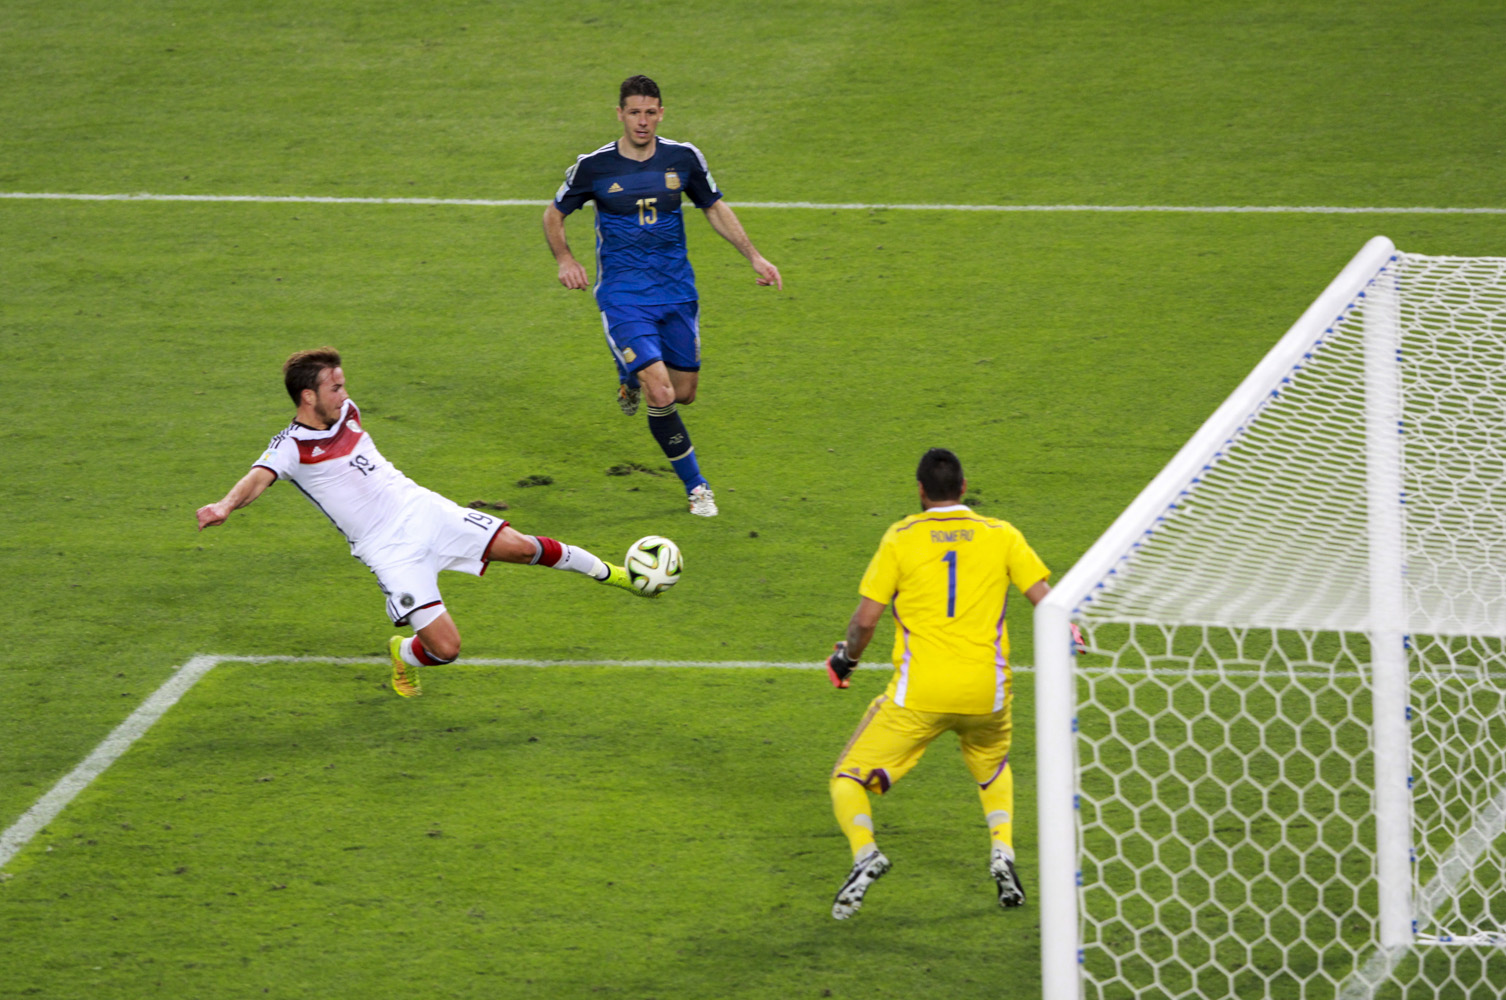 https://upload.wikimedia.org/wikipedia/commons/2/24/Germany_and_Argentina_face_off_in_the_final_of_the_World_Cup_2014_-2014-07-13_%286%29.jpg